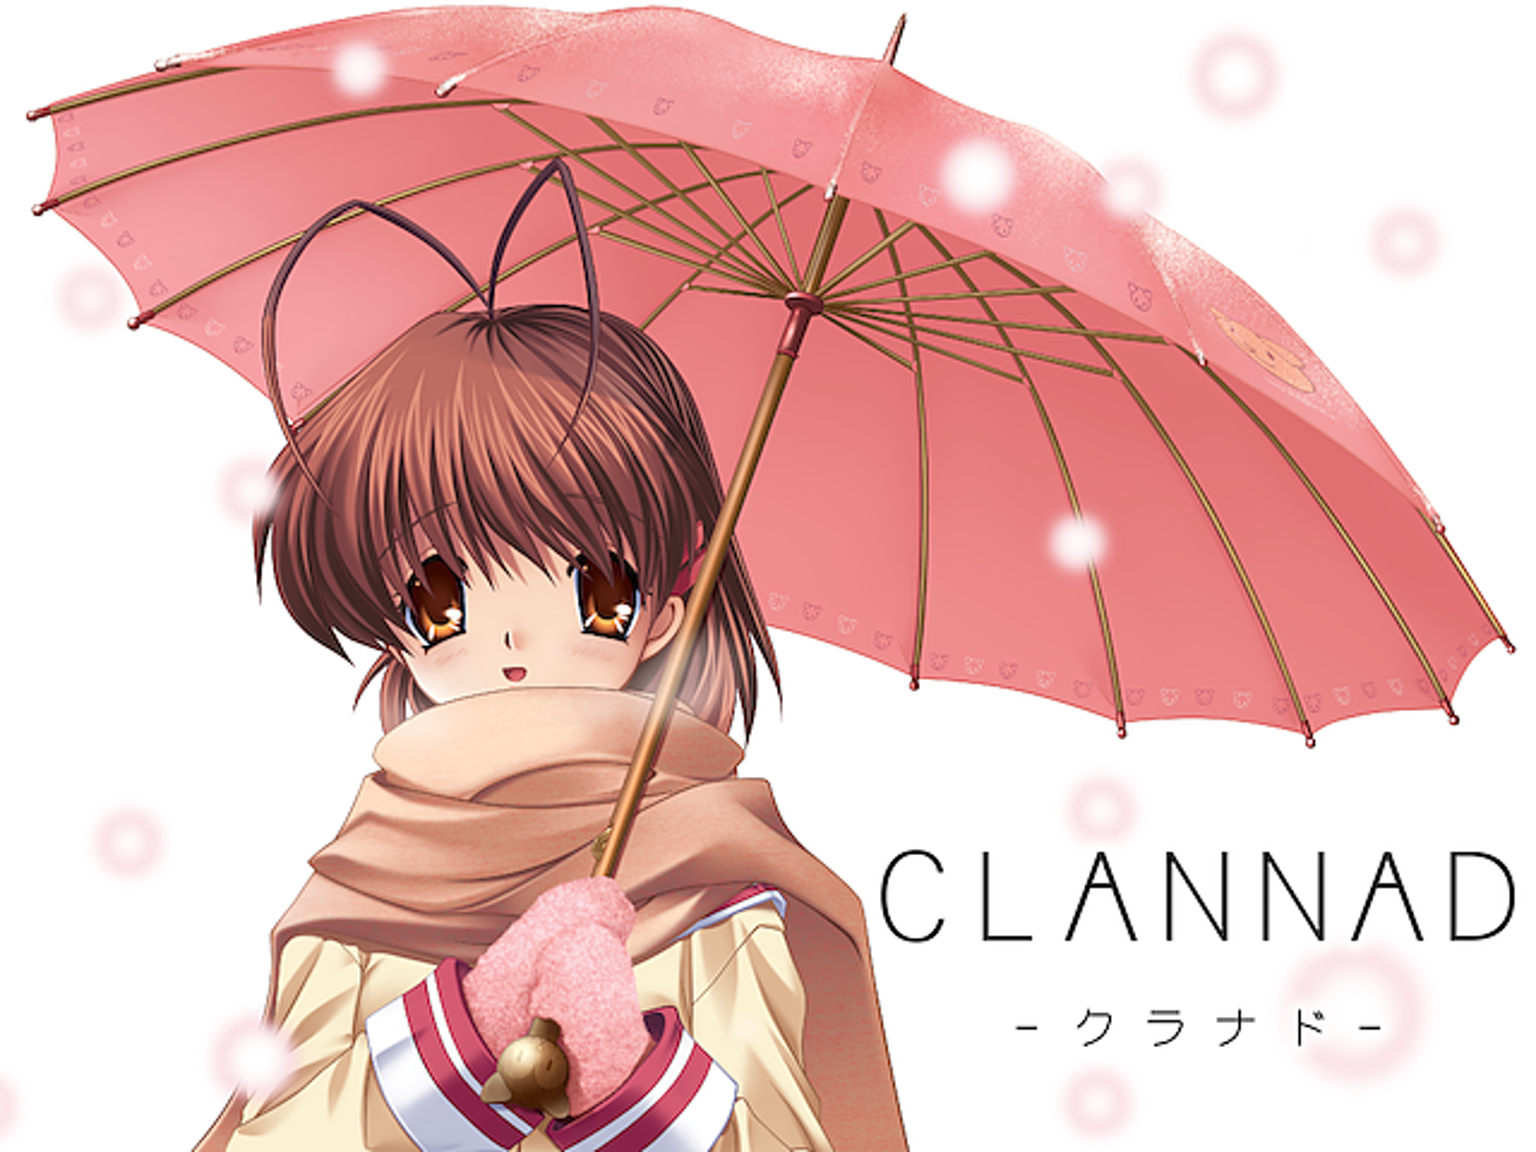 CLANNAD Official English Release Production Update #4